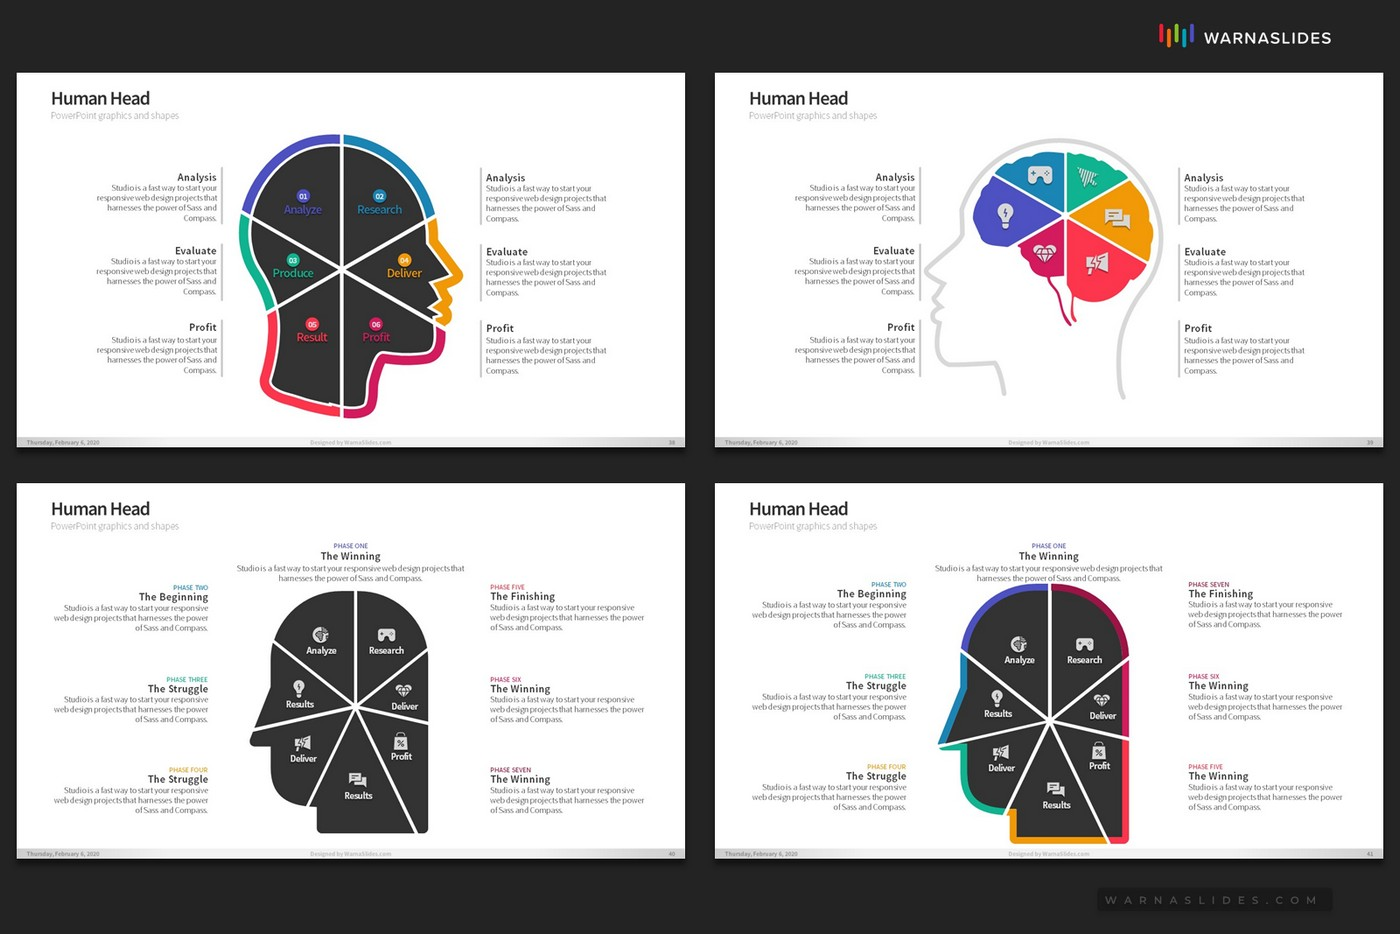 Human-Head-Ideas-Brainstorm-PowerPoint-Template-for-Business-Pitch-Deck-Professional-Creative-PowerPoint-Icons-010